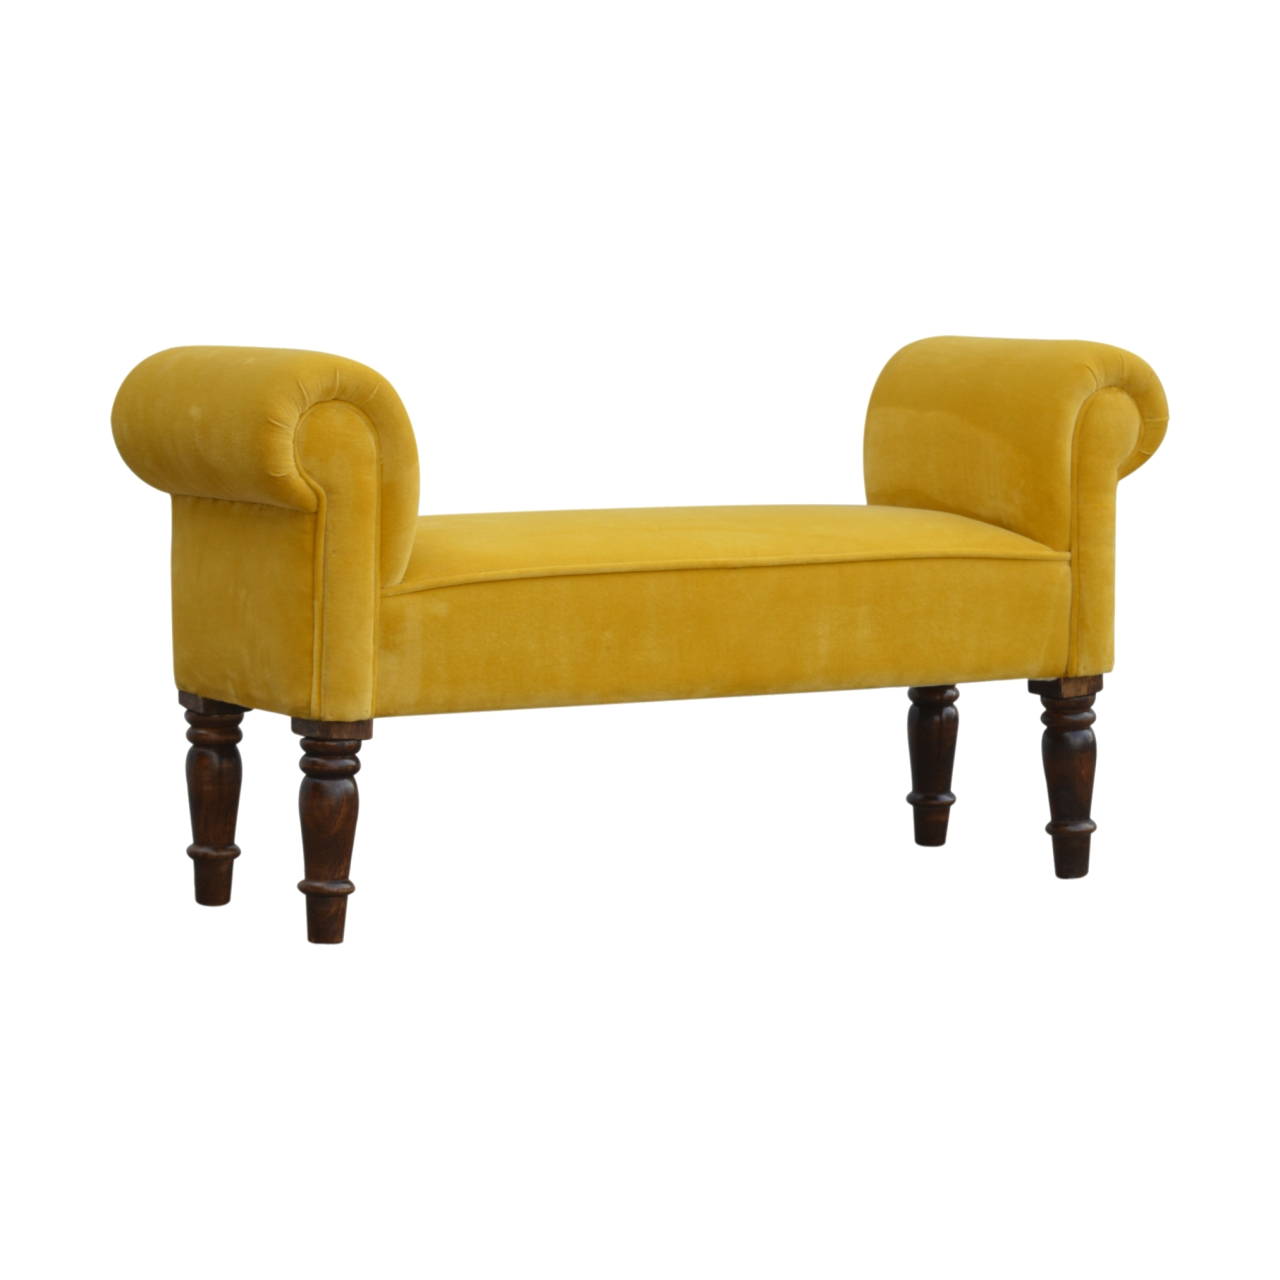 The Home Furnishings Company Ochre Mustard Velvet Bench